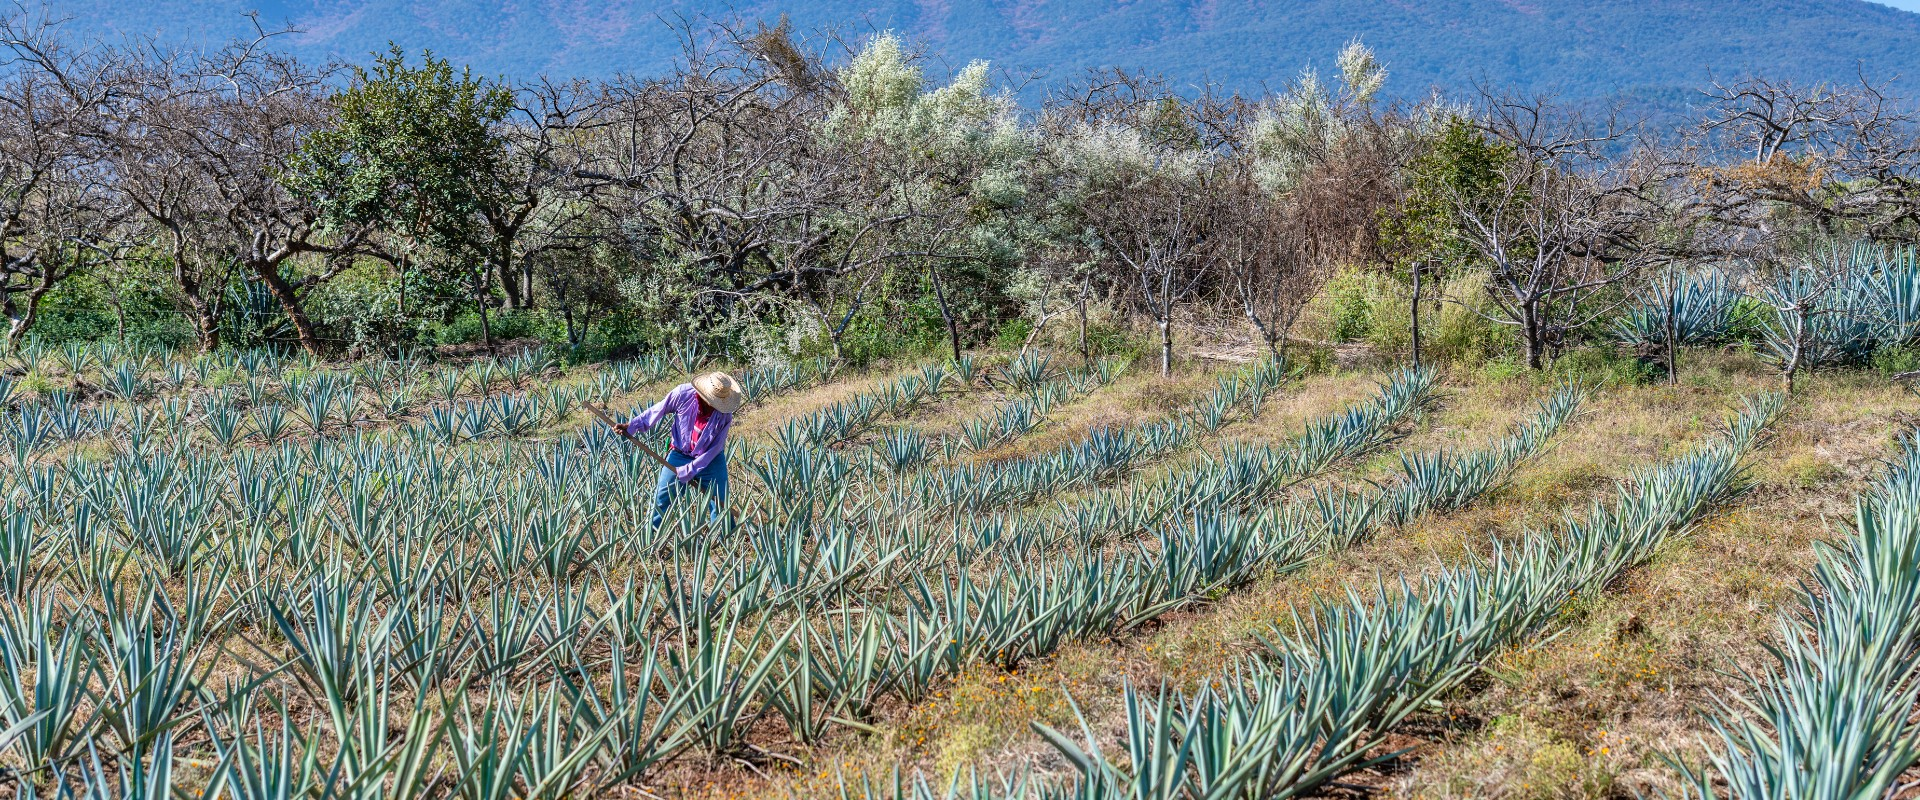 agave field worker in Mexico